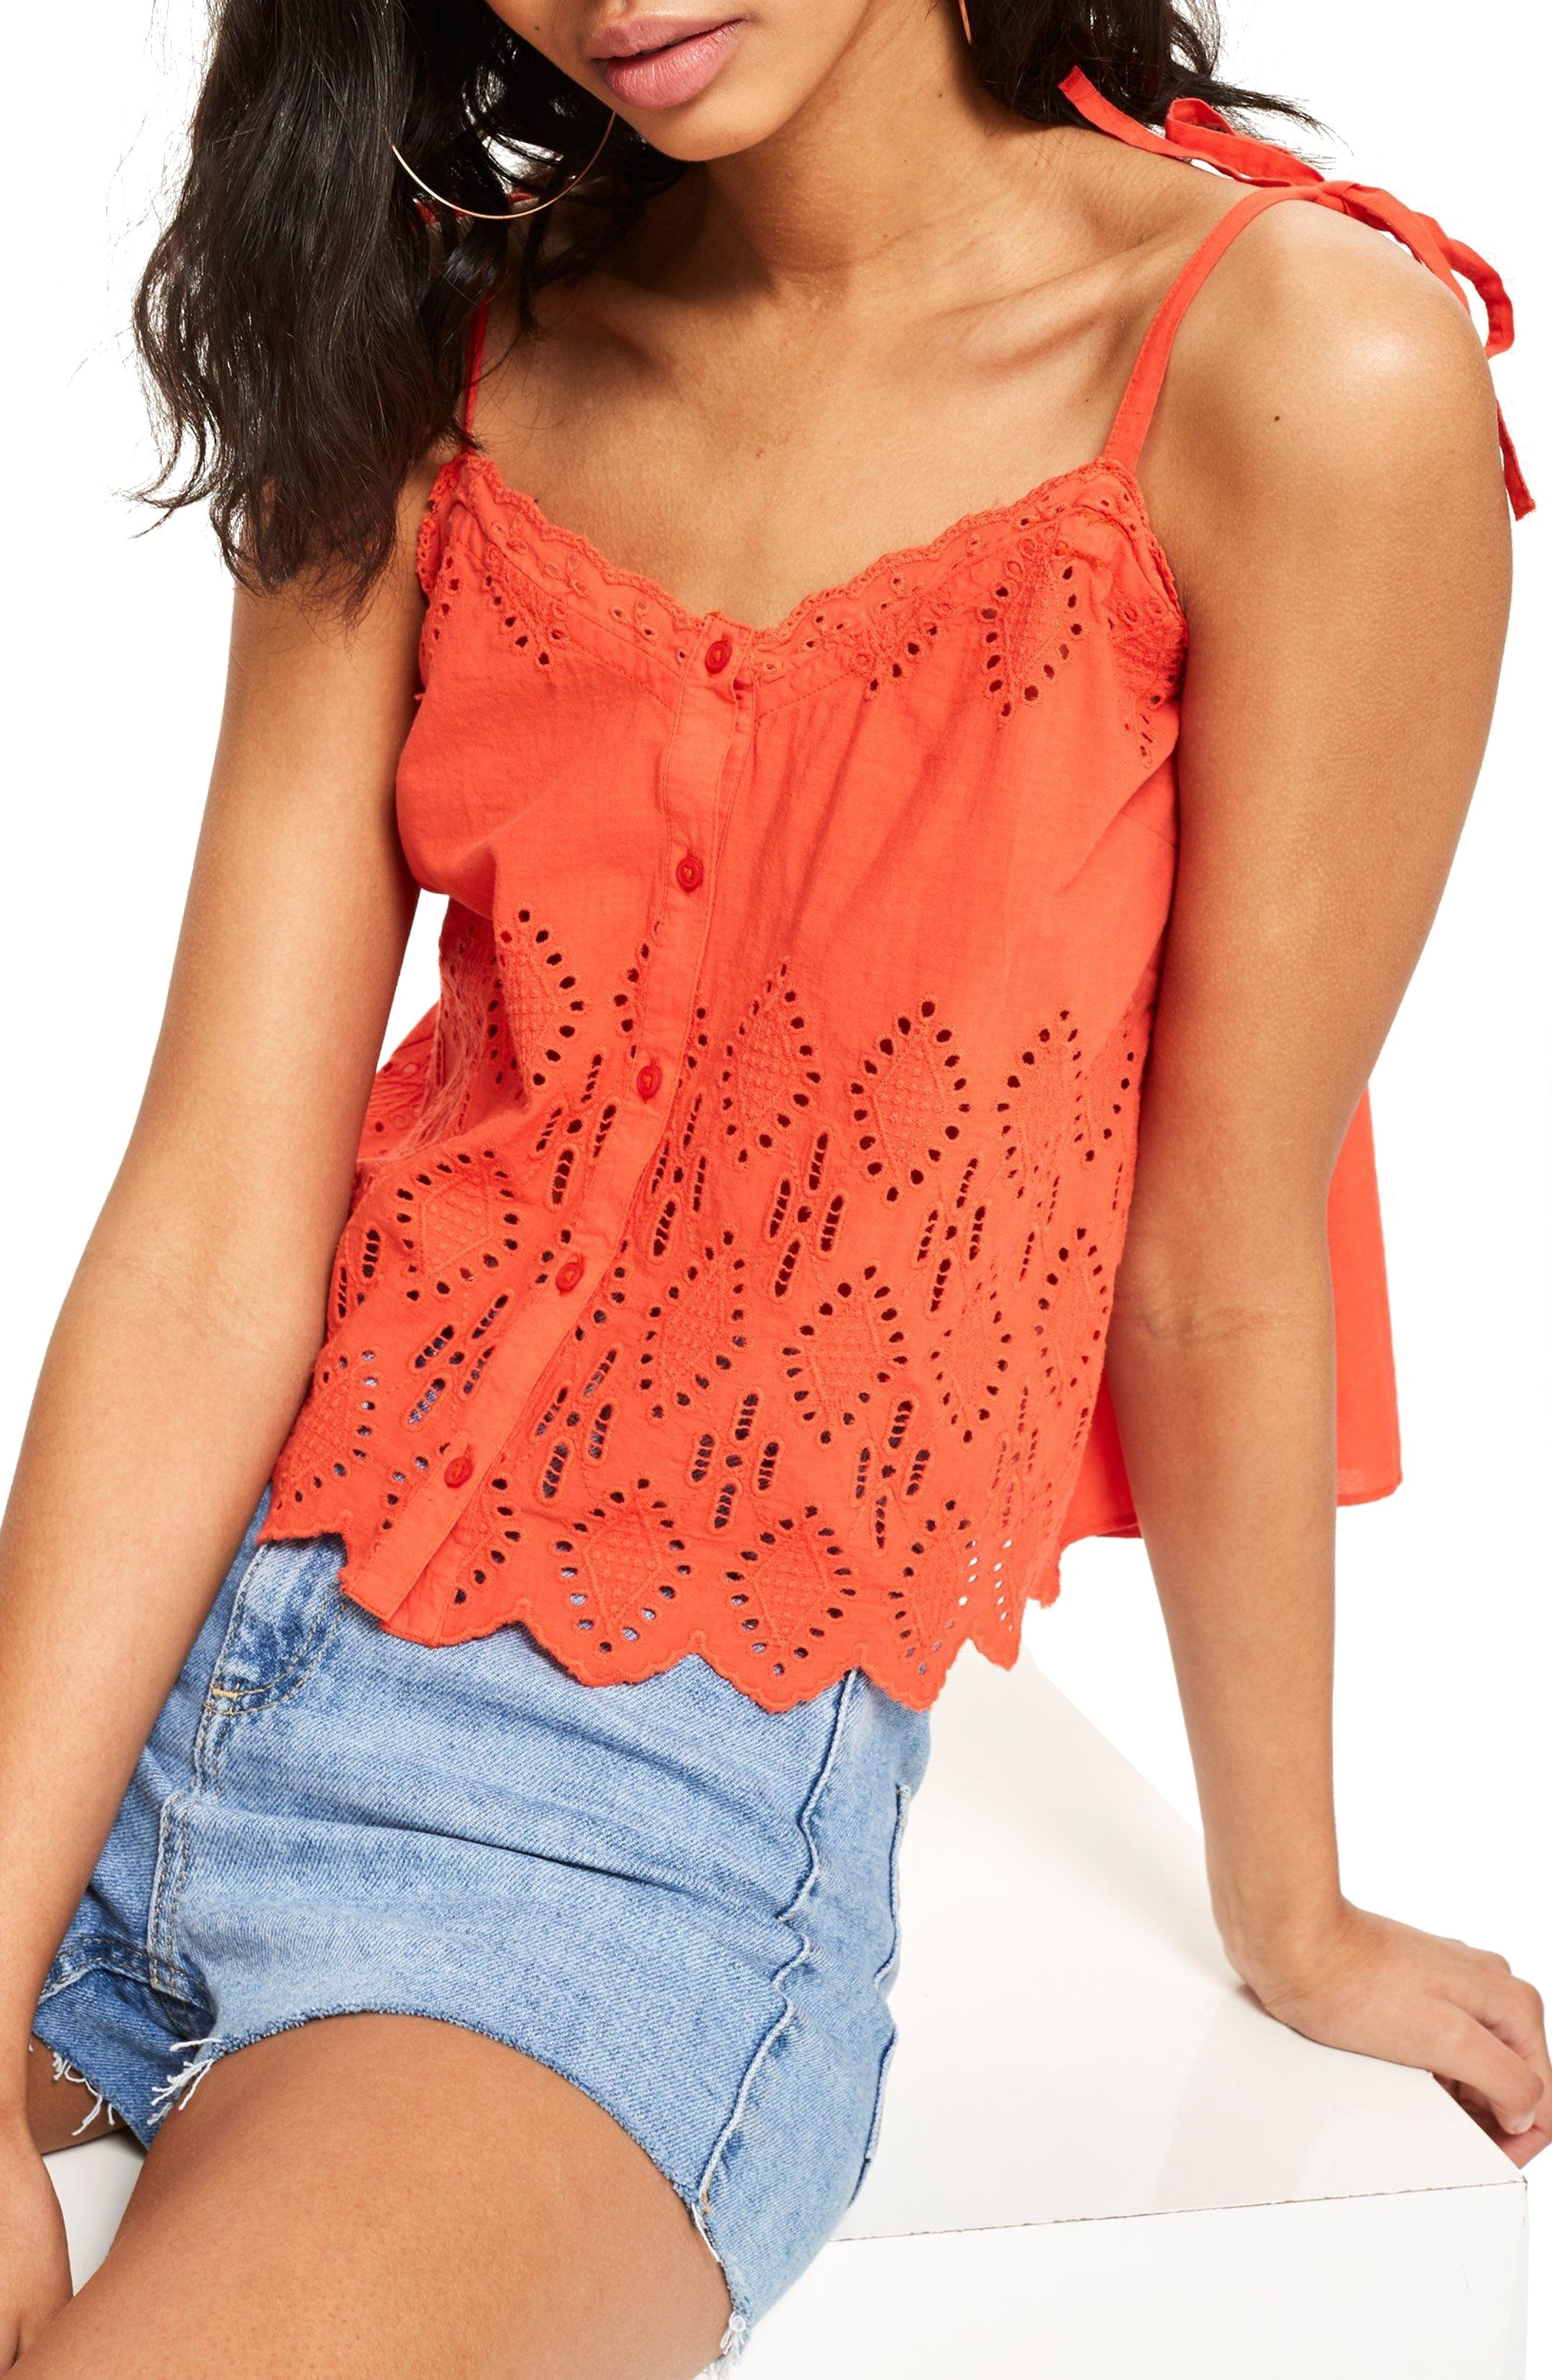 Broderie Camisole Top,                             Main thumbnail 1, color,                             Coral